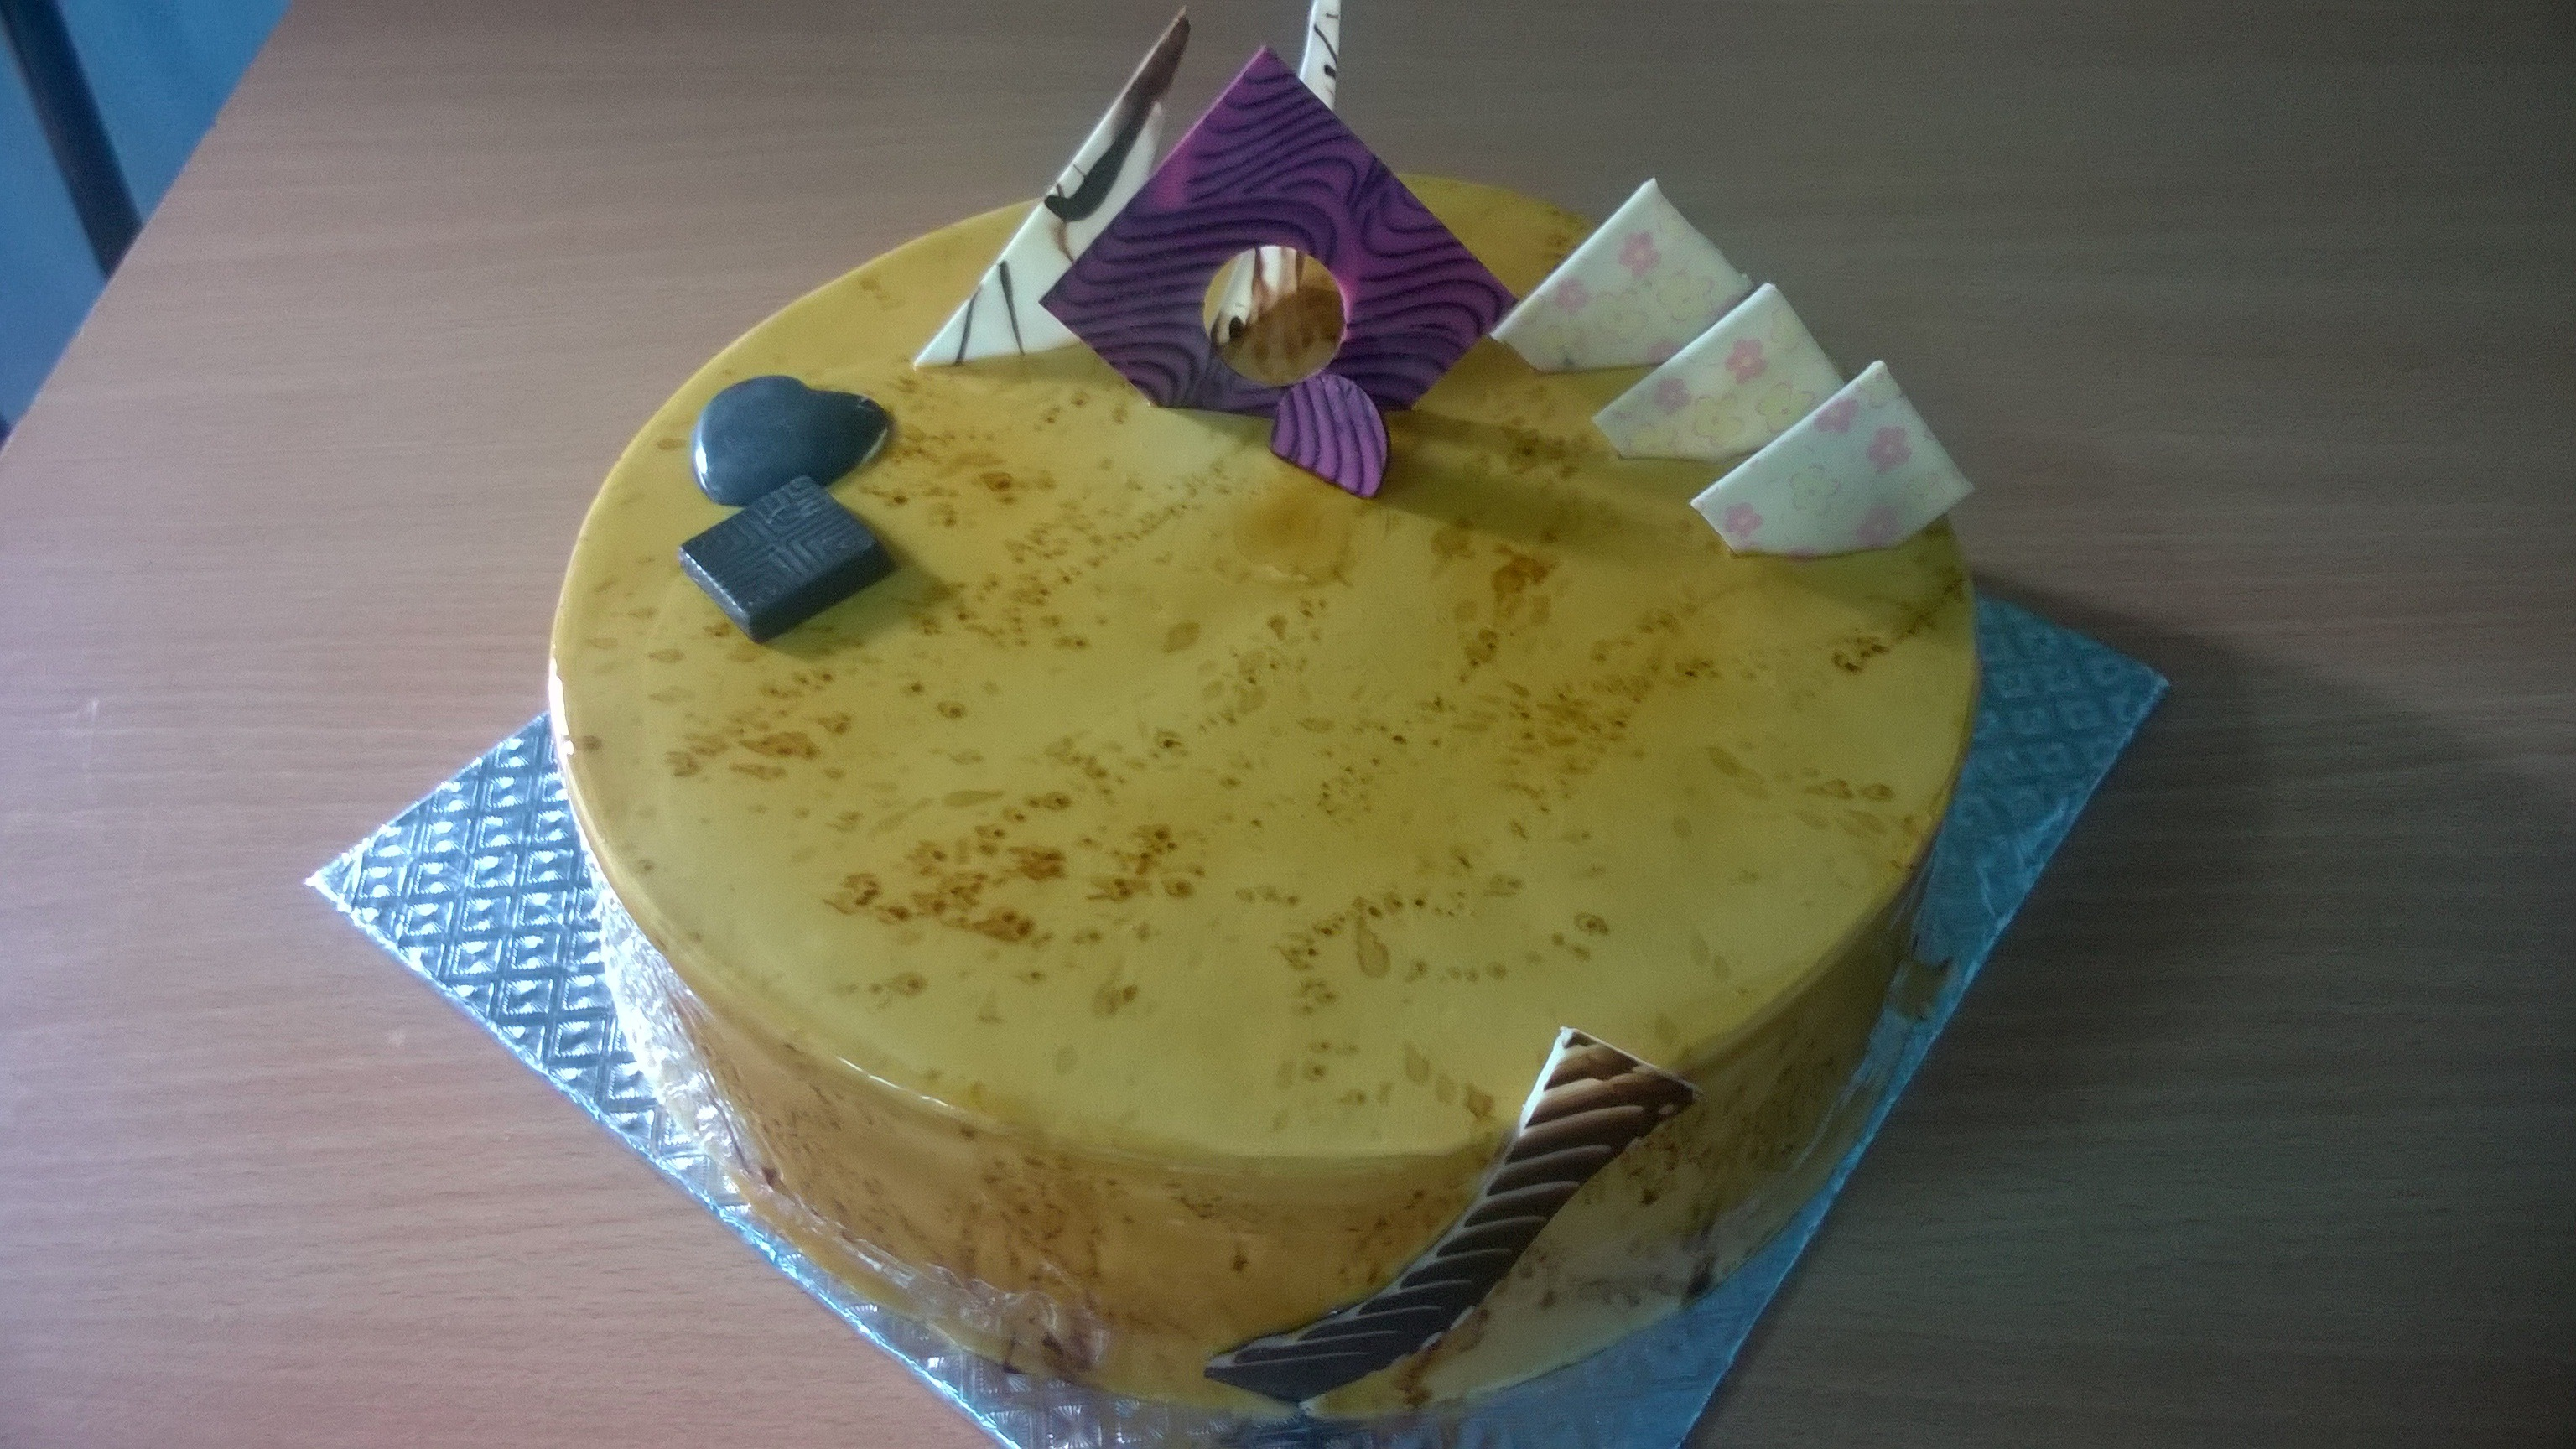 mocha-cream-cakes-in-coimbatore-1